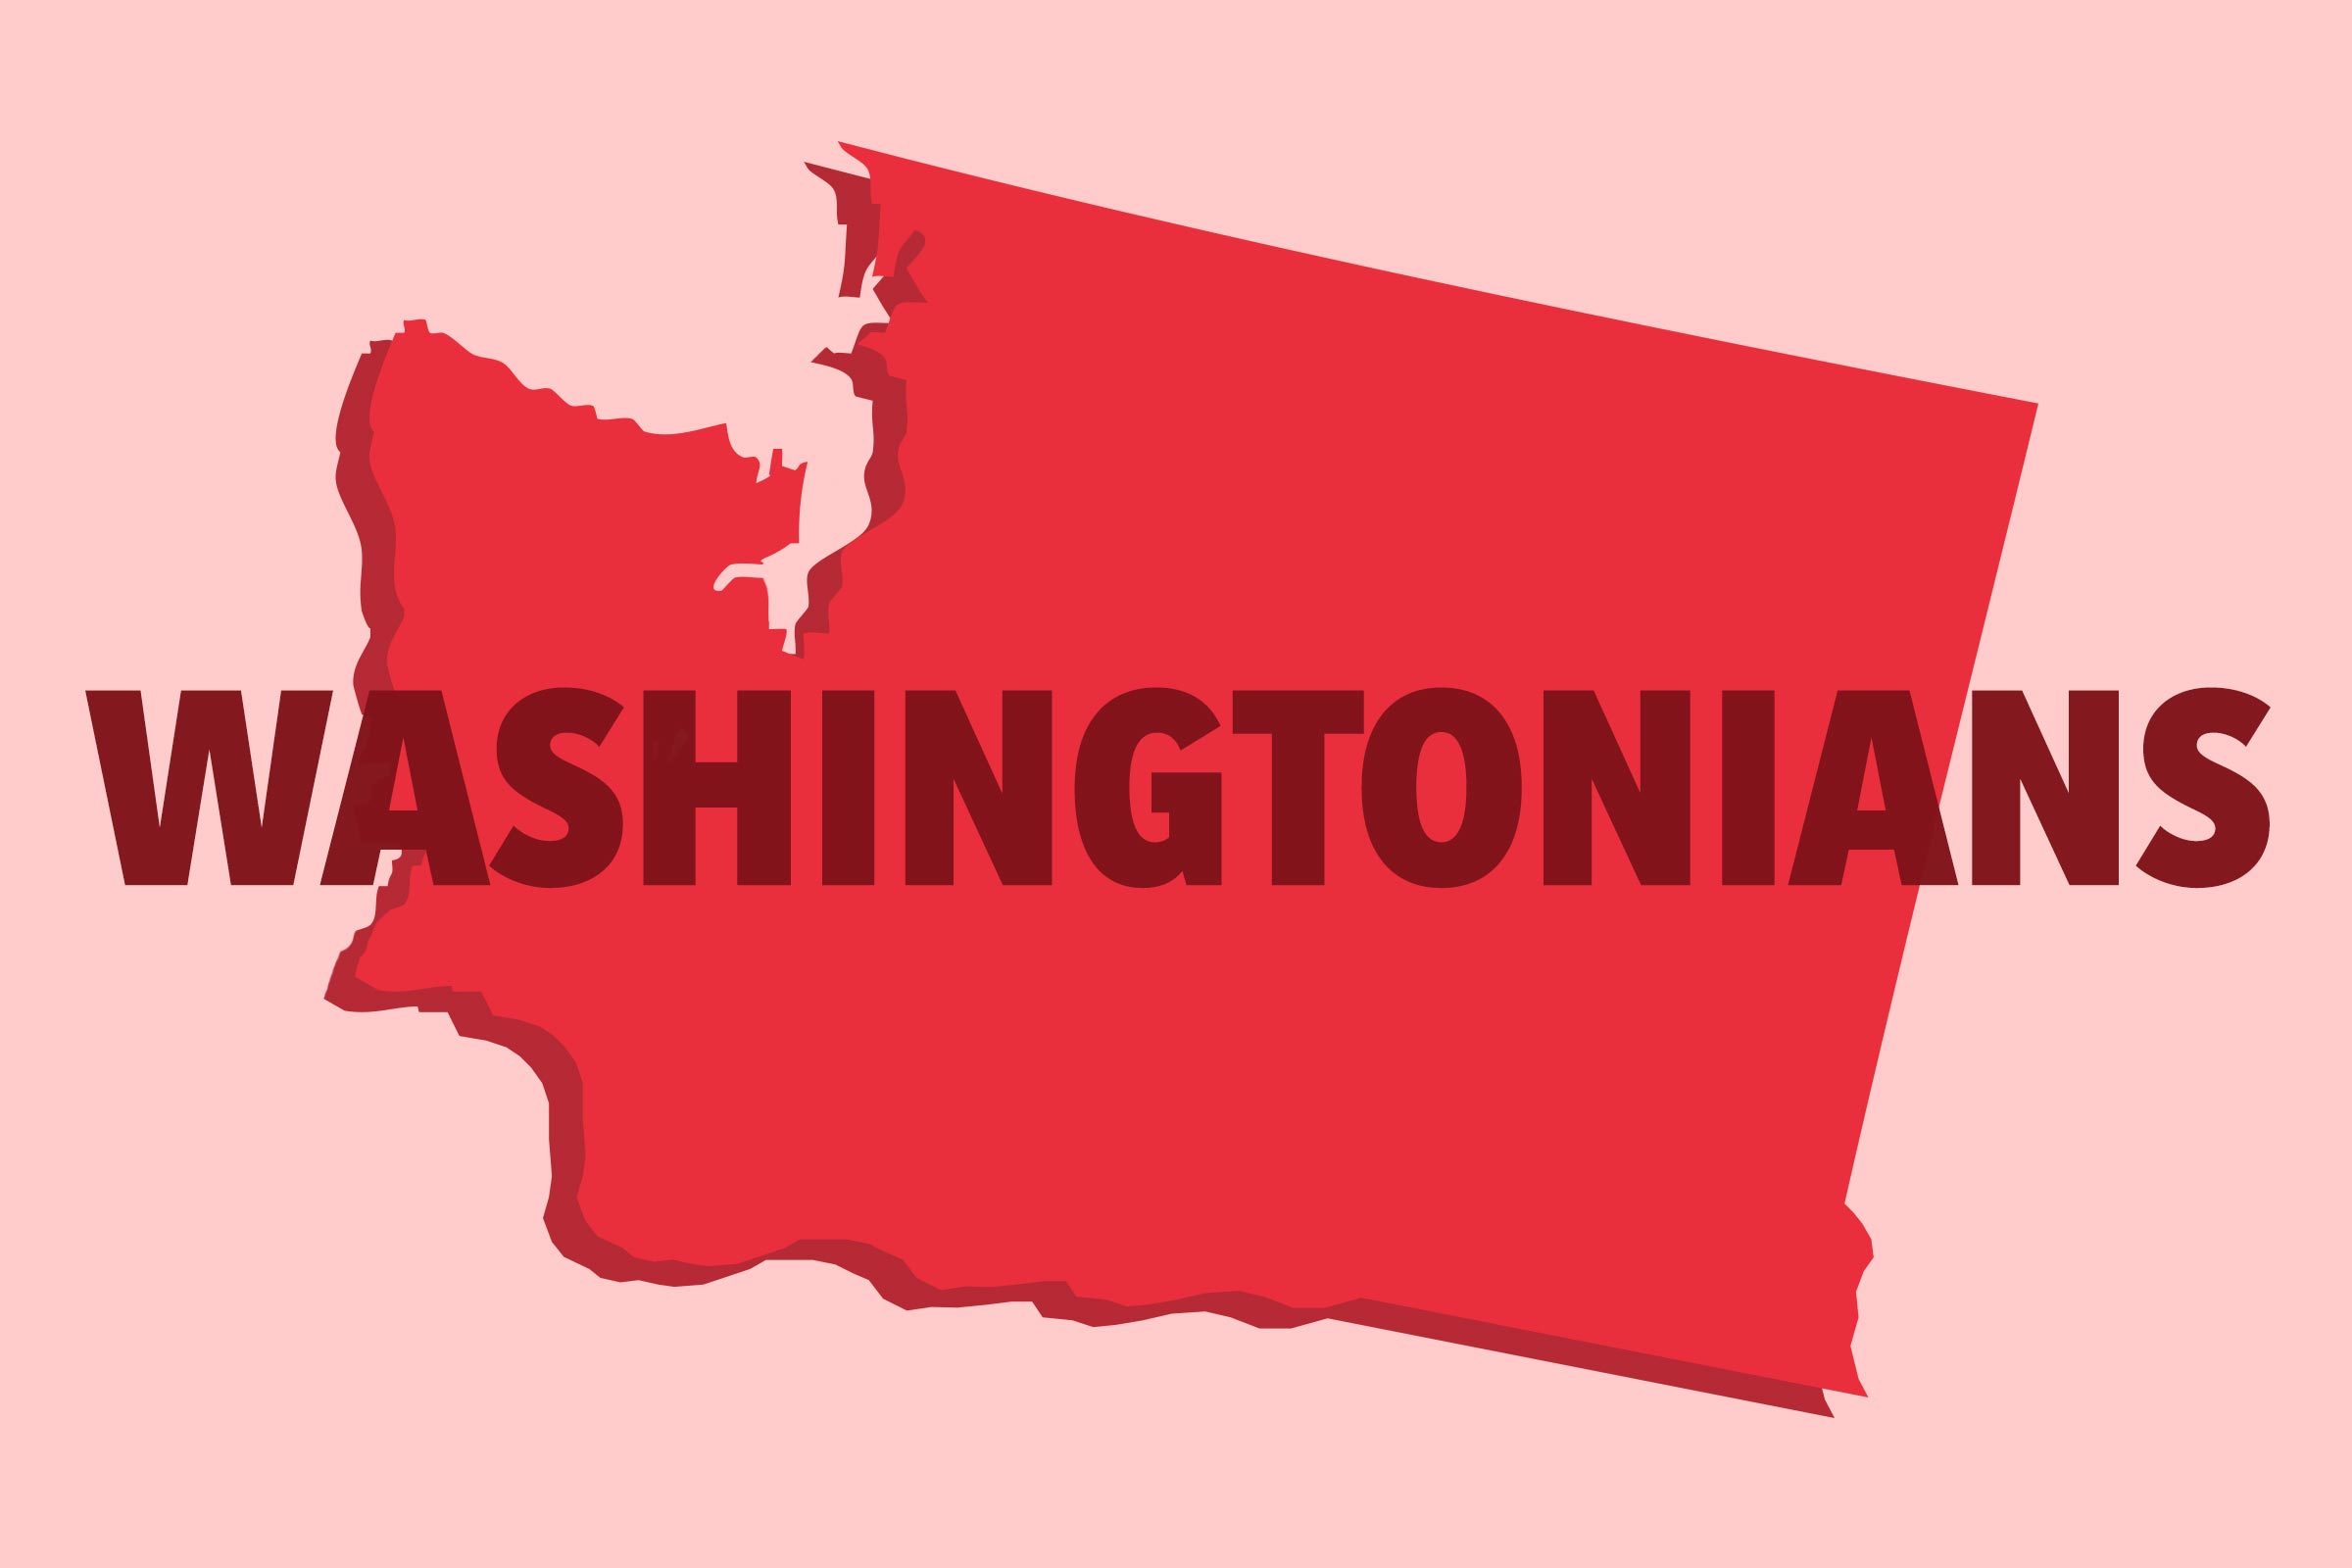 Washingtonians